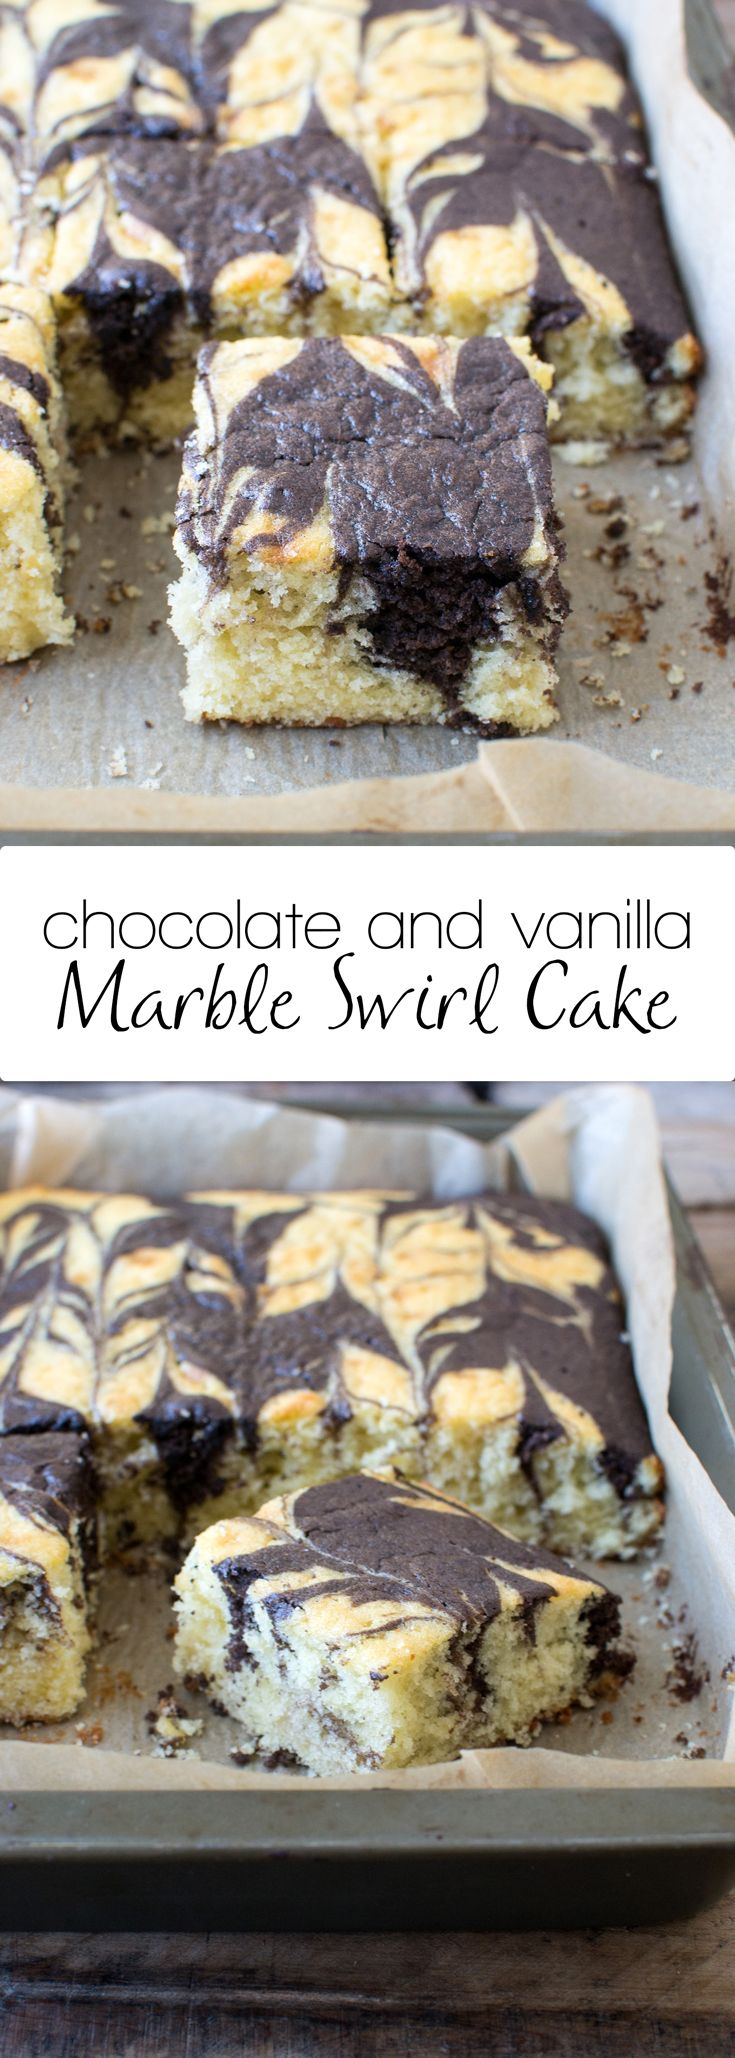 Easy chocolate and vanilla marble swirl cake! Just one bowl is needed to whip up this delicious dessert!